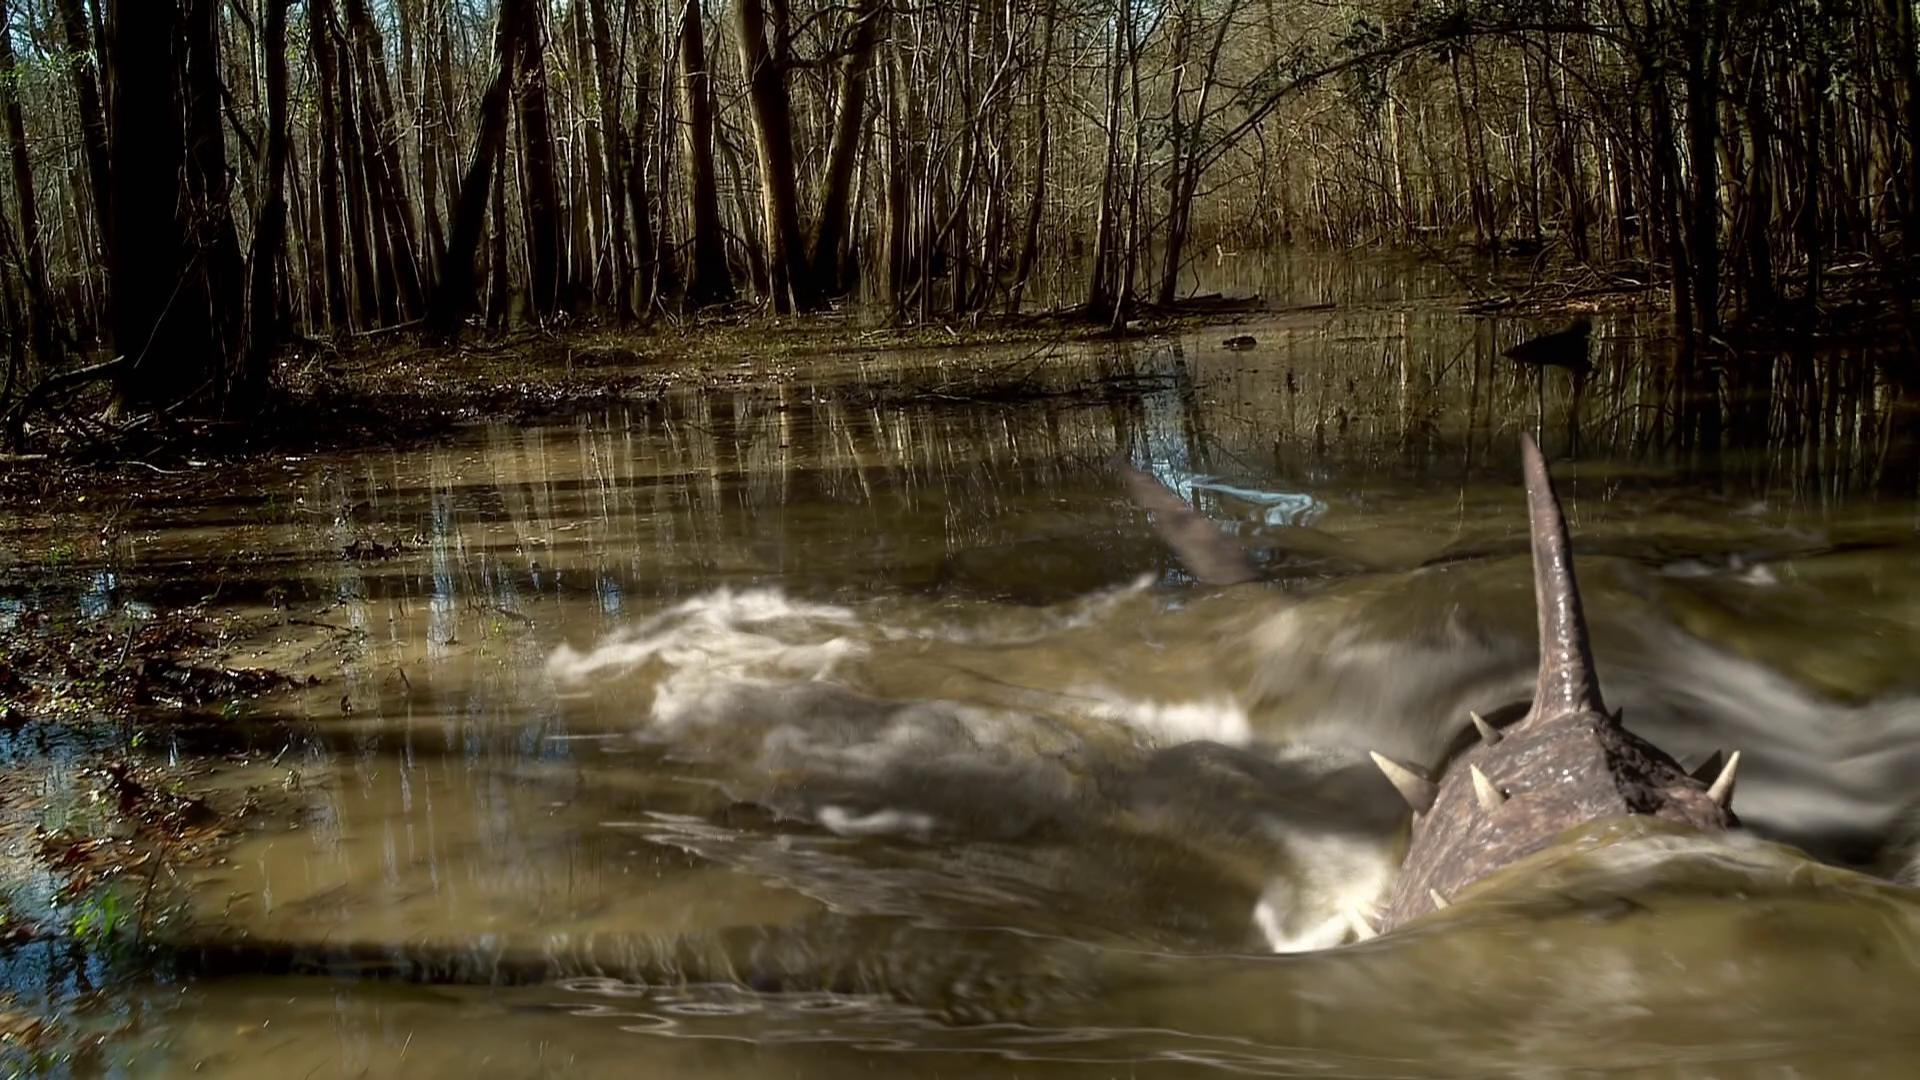 Shark in the swamp in Sharkansas Women's Prison Massacre (2016)